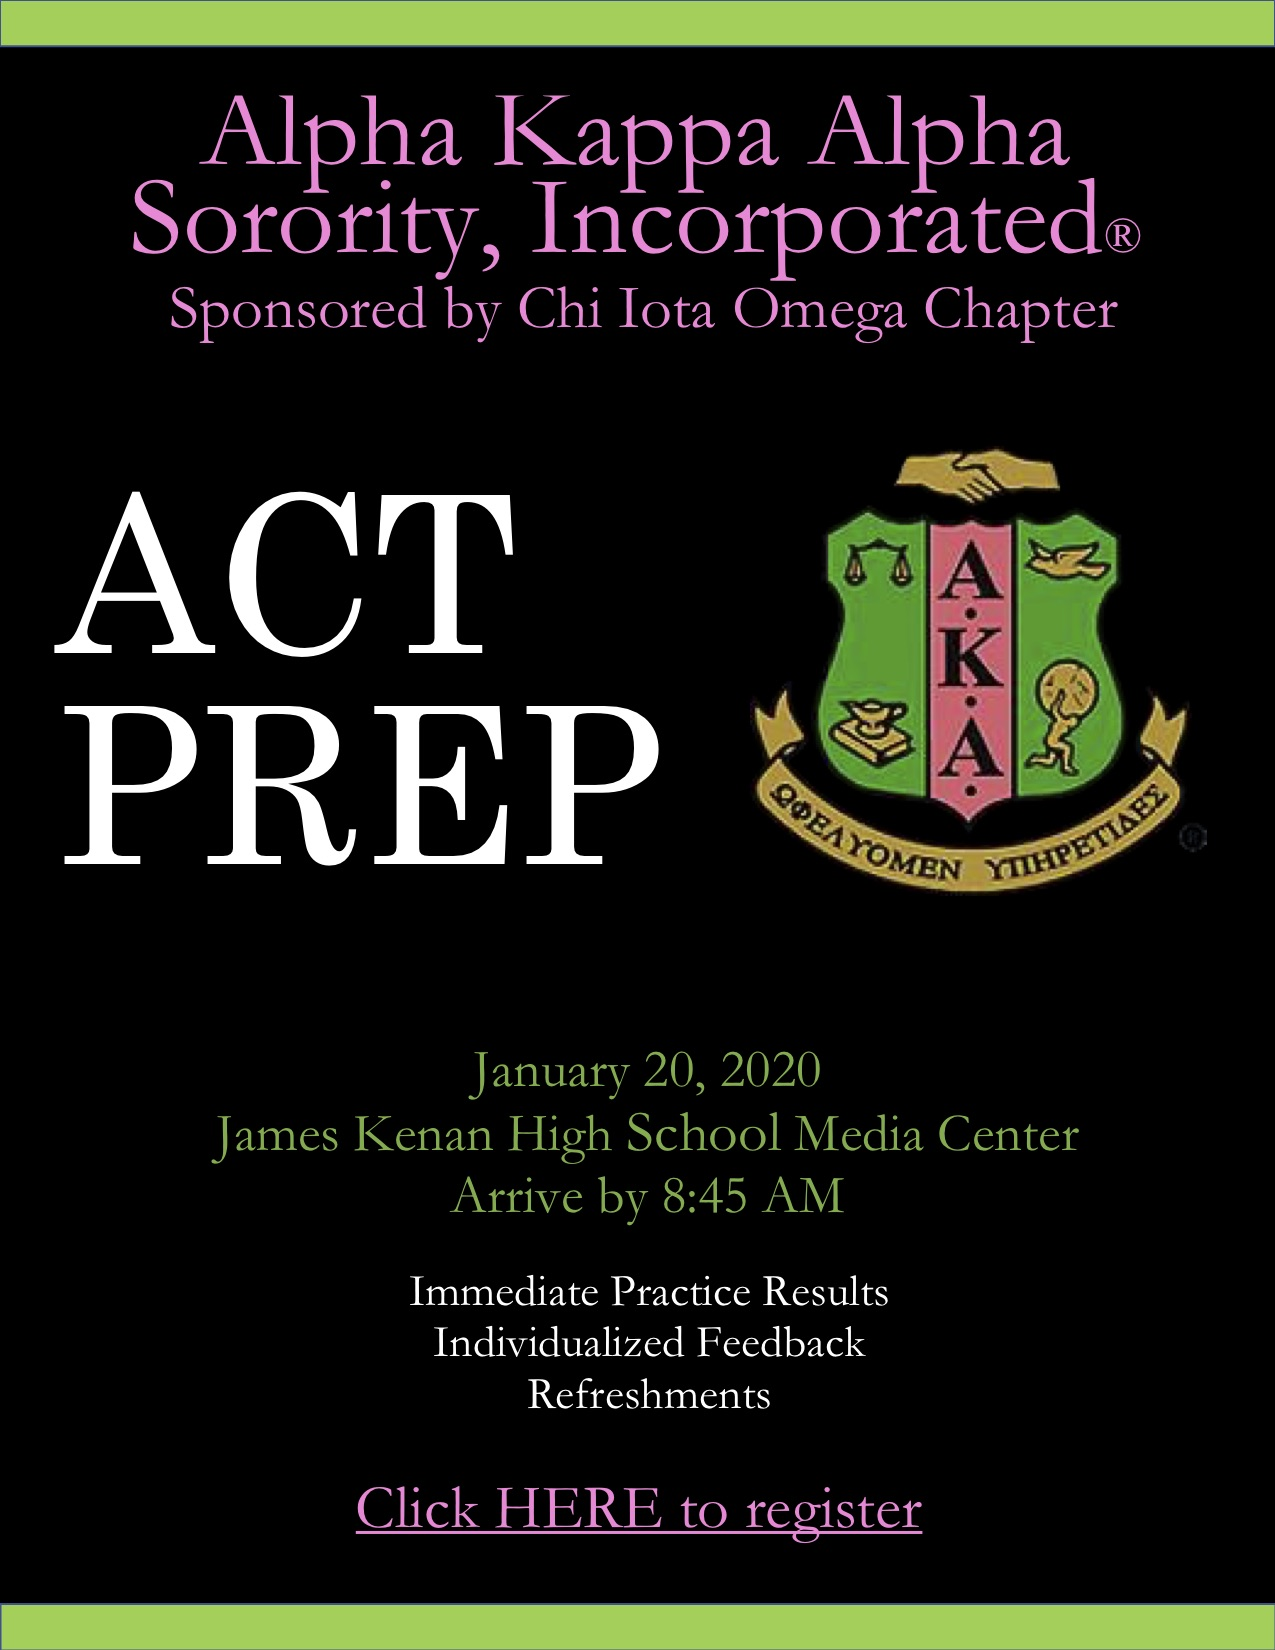 ACT Prep Session Coming to JKHS